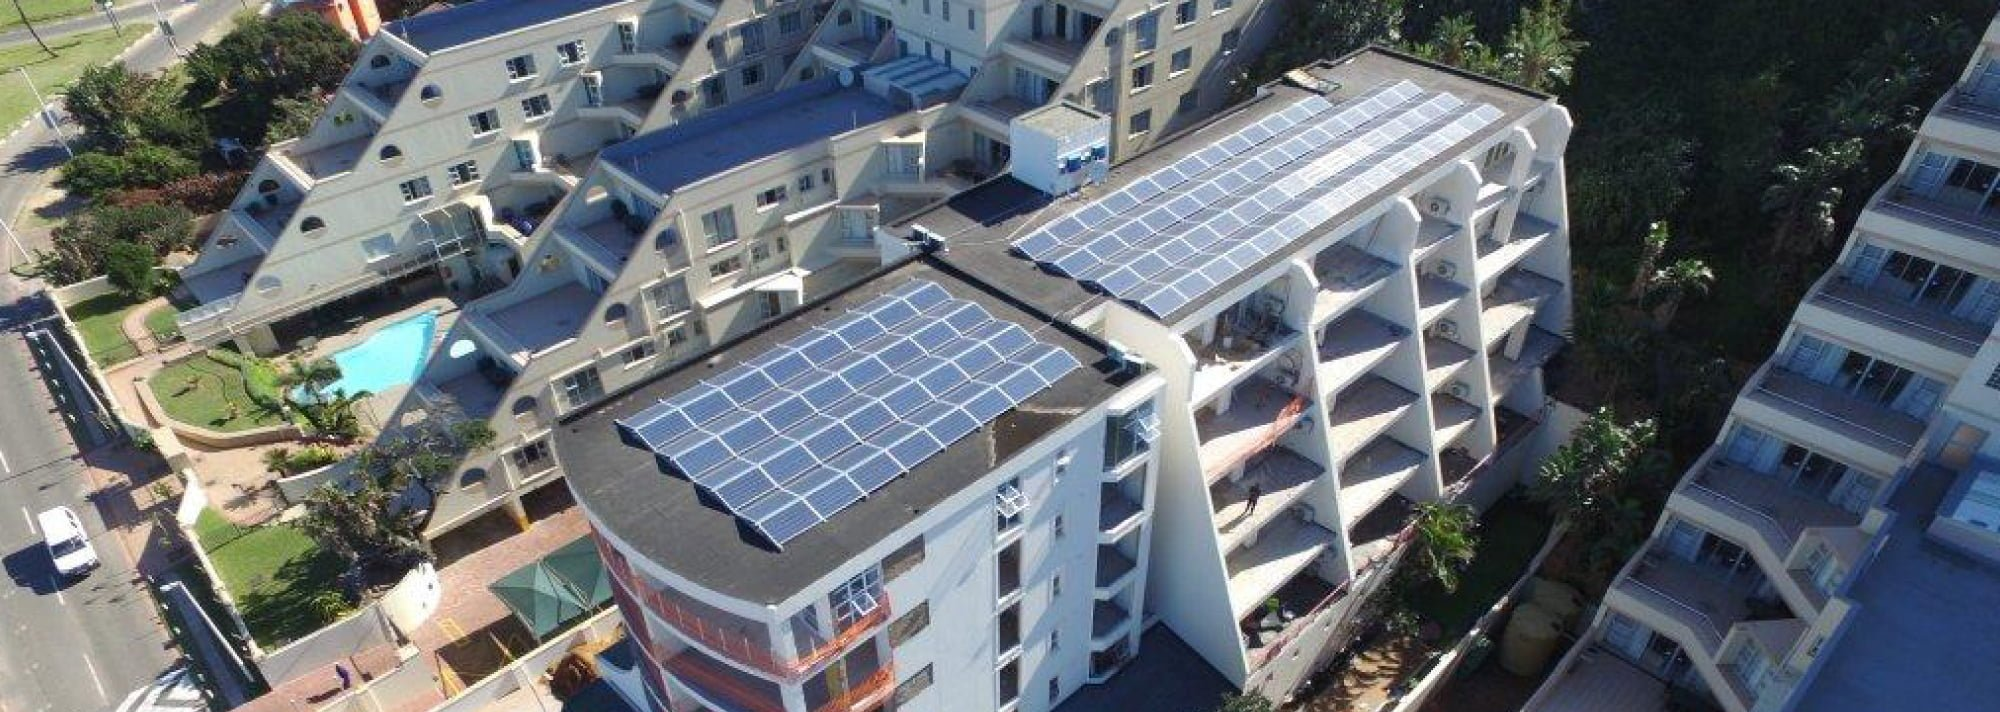 PROINSO's Solar PV installations on business buildings